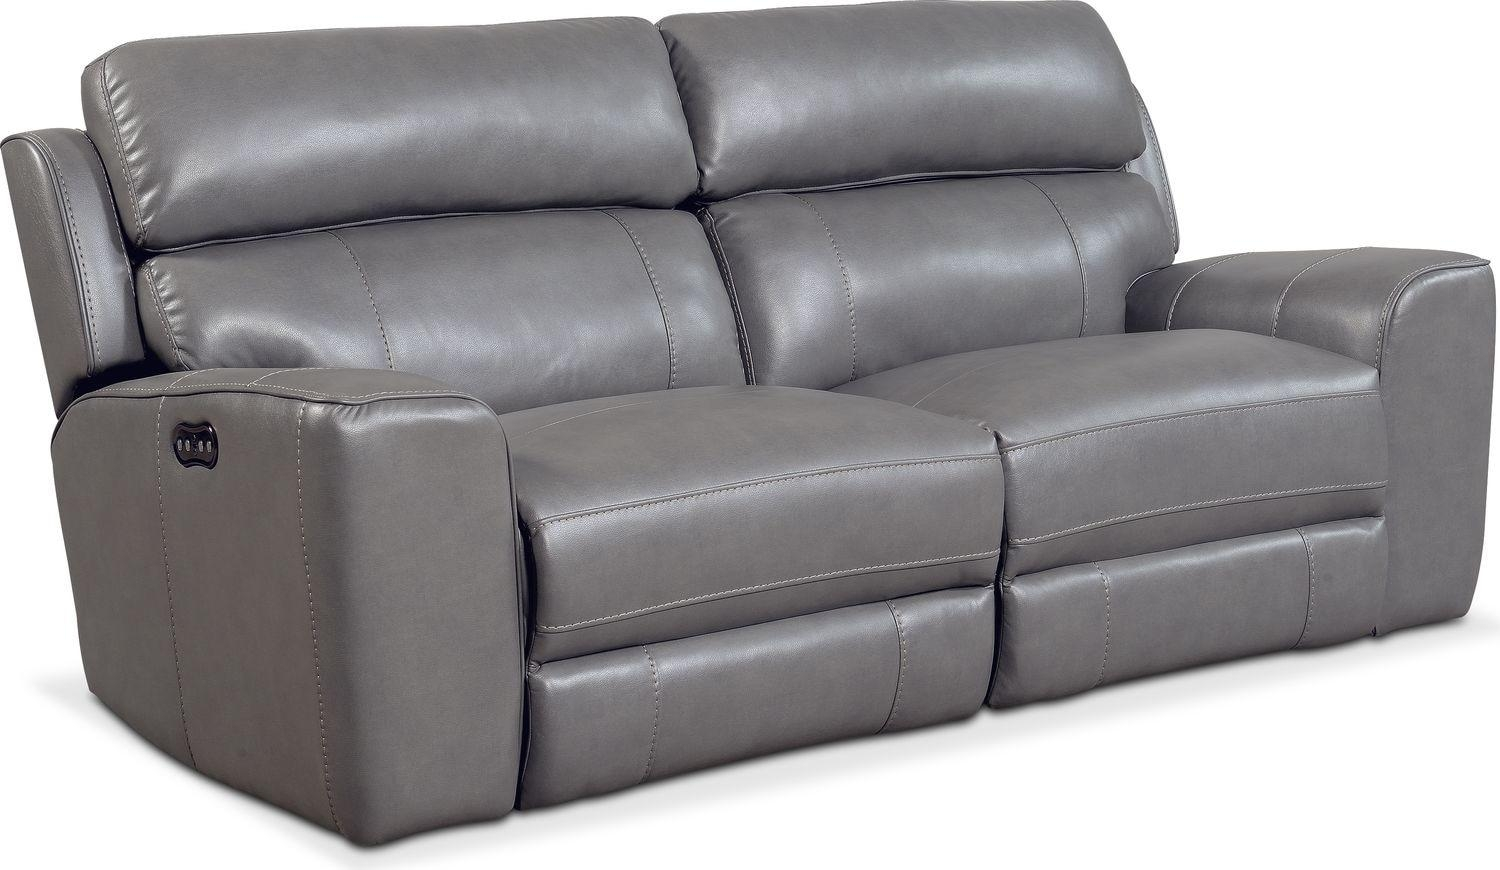 Newport 2-Piece Power Reclining Sofa - Gray | Value City Furniture pertaining to Newport Sofas